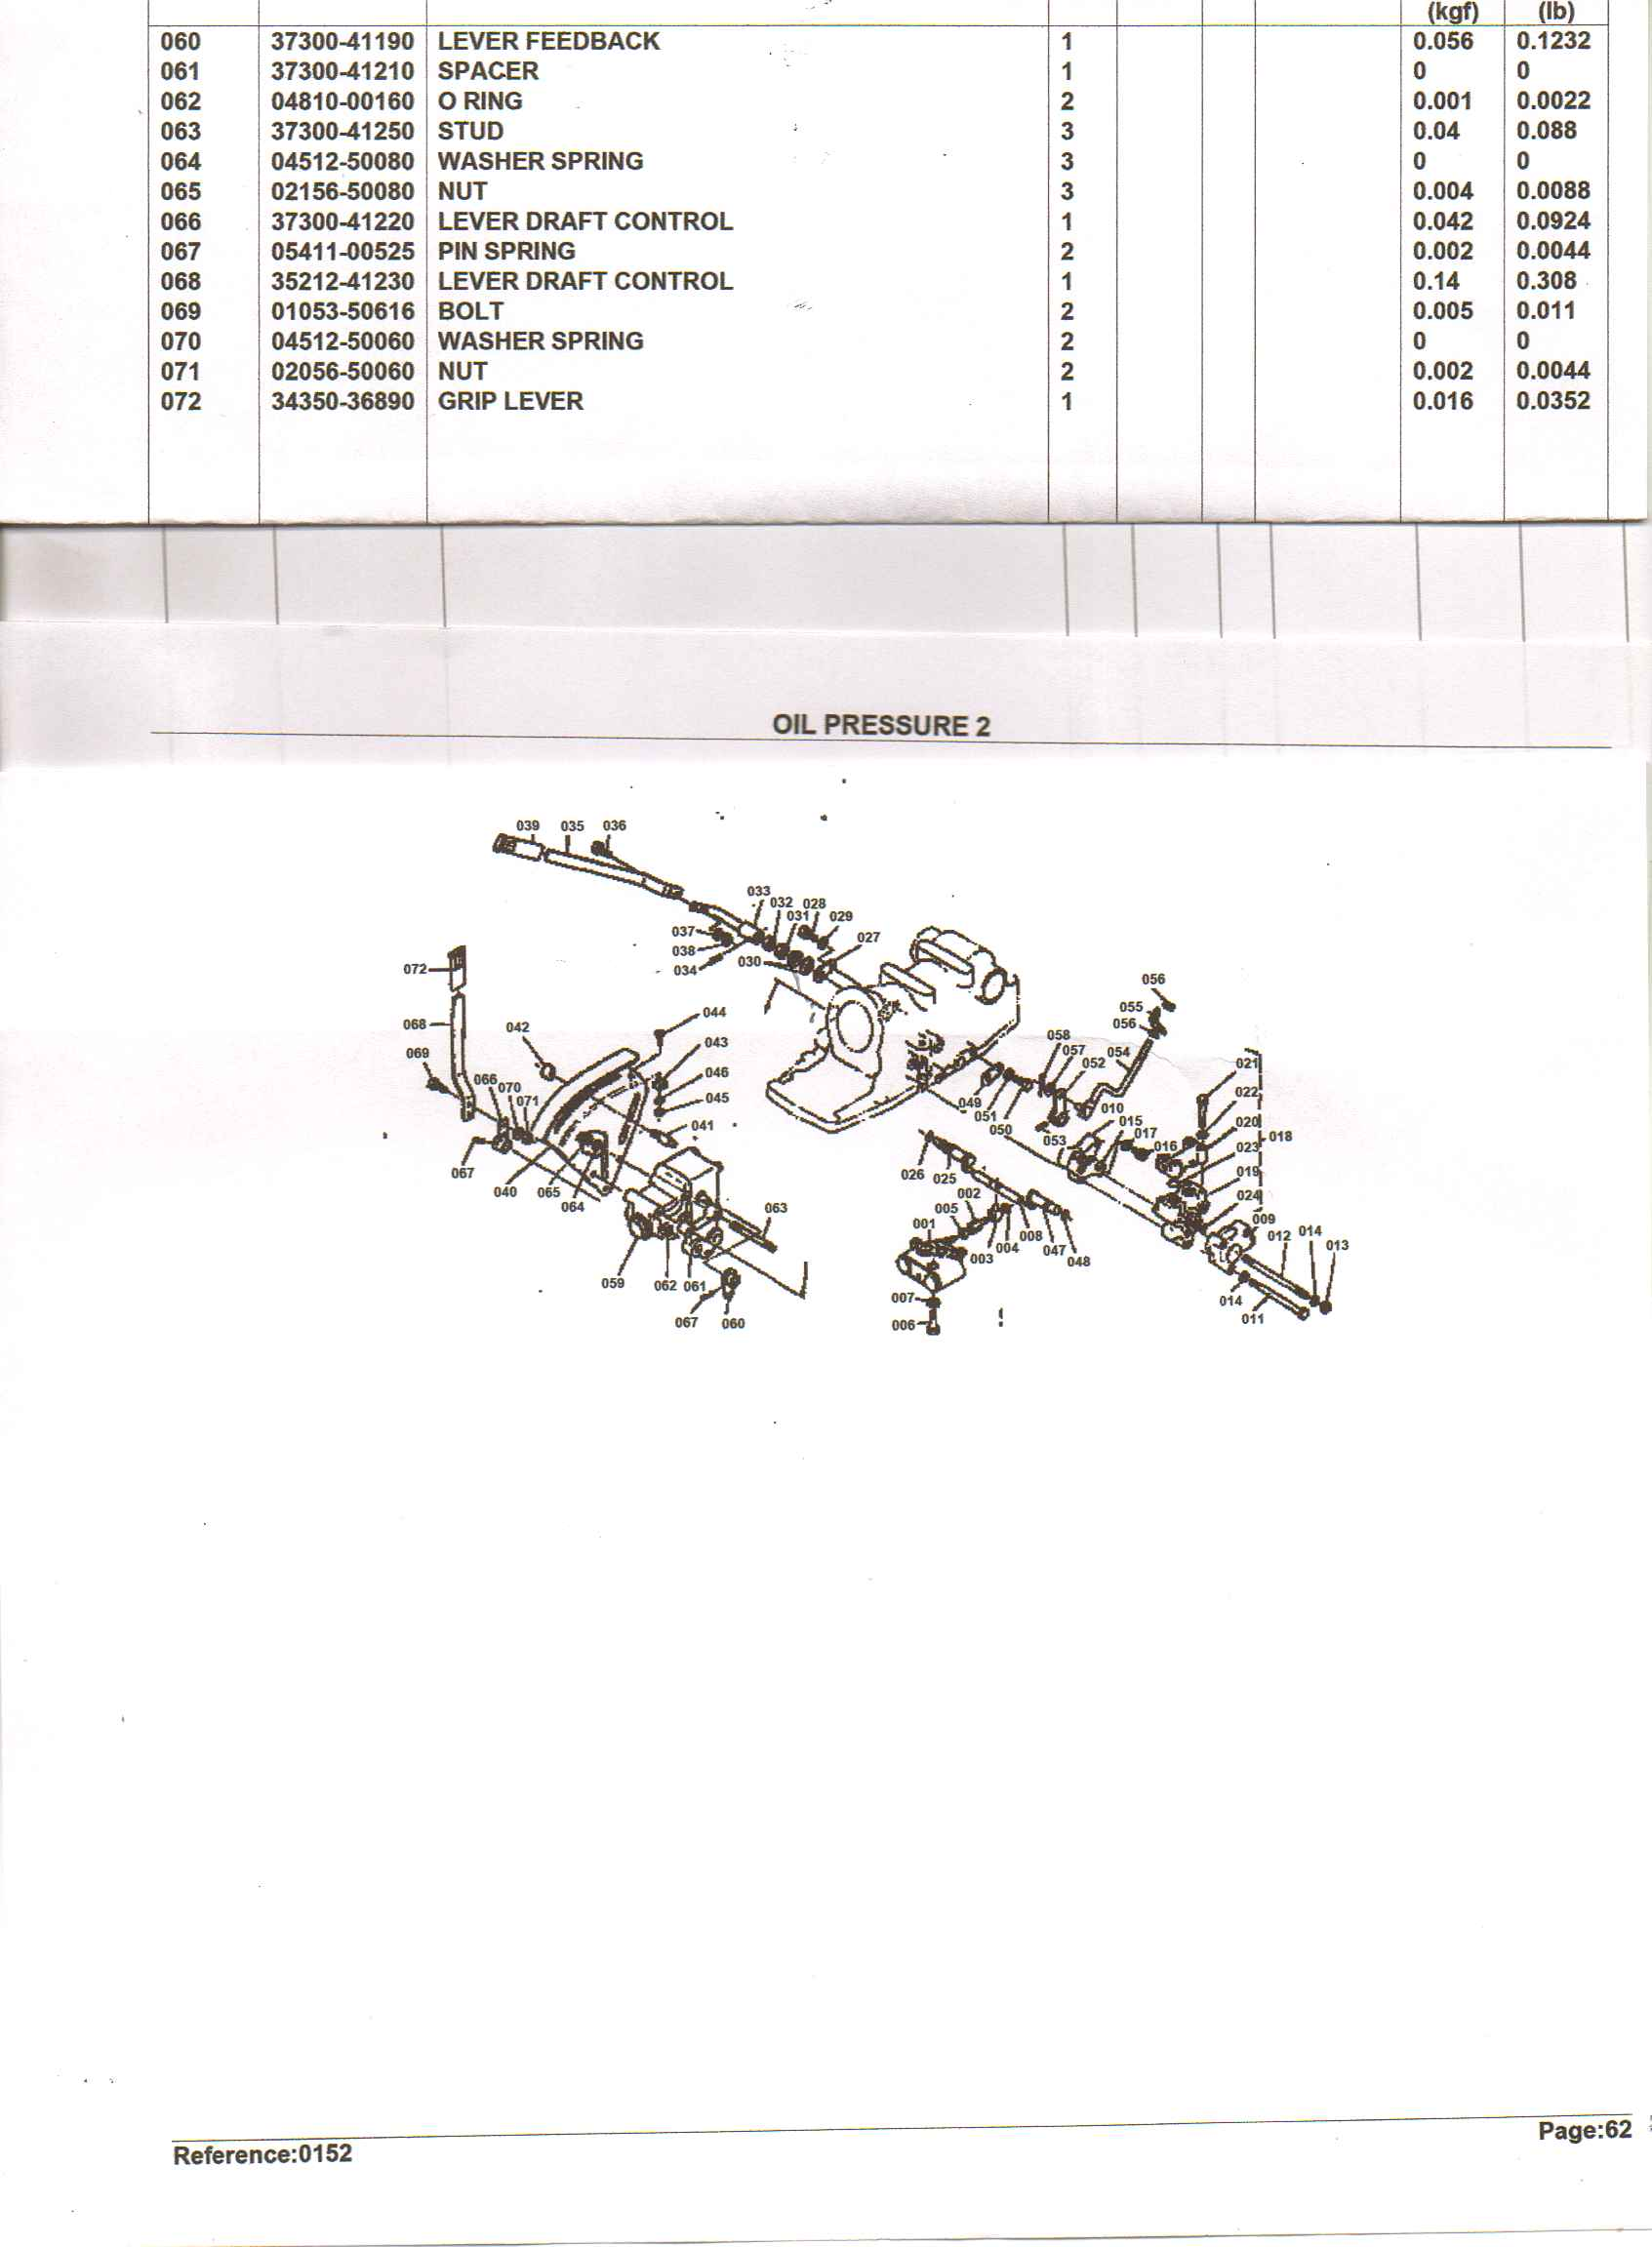 2012 10 09_014808_kobota_l345_three_point1 l2250 kubota wiring diagram kubota l2850 wiring diagram, kubota kubota l4310 wiring diagram at reclaimingppi.co